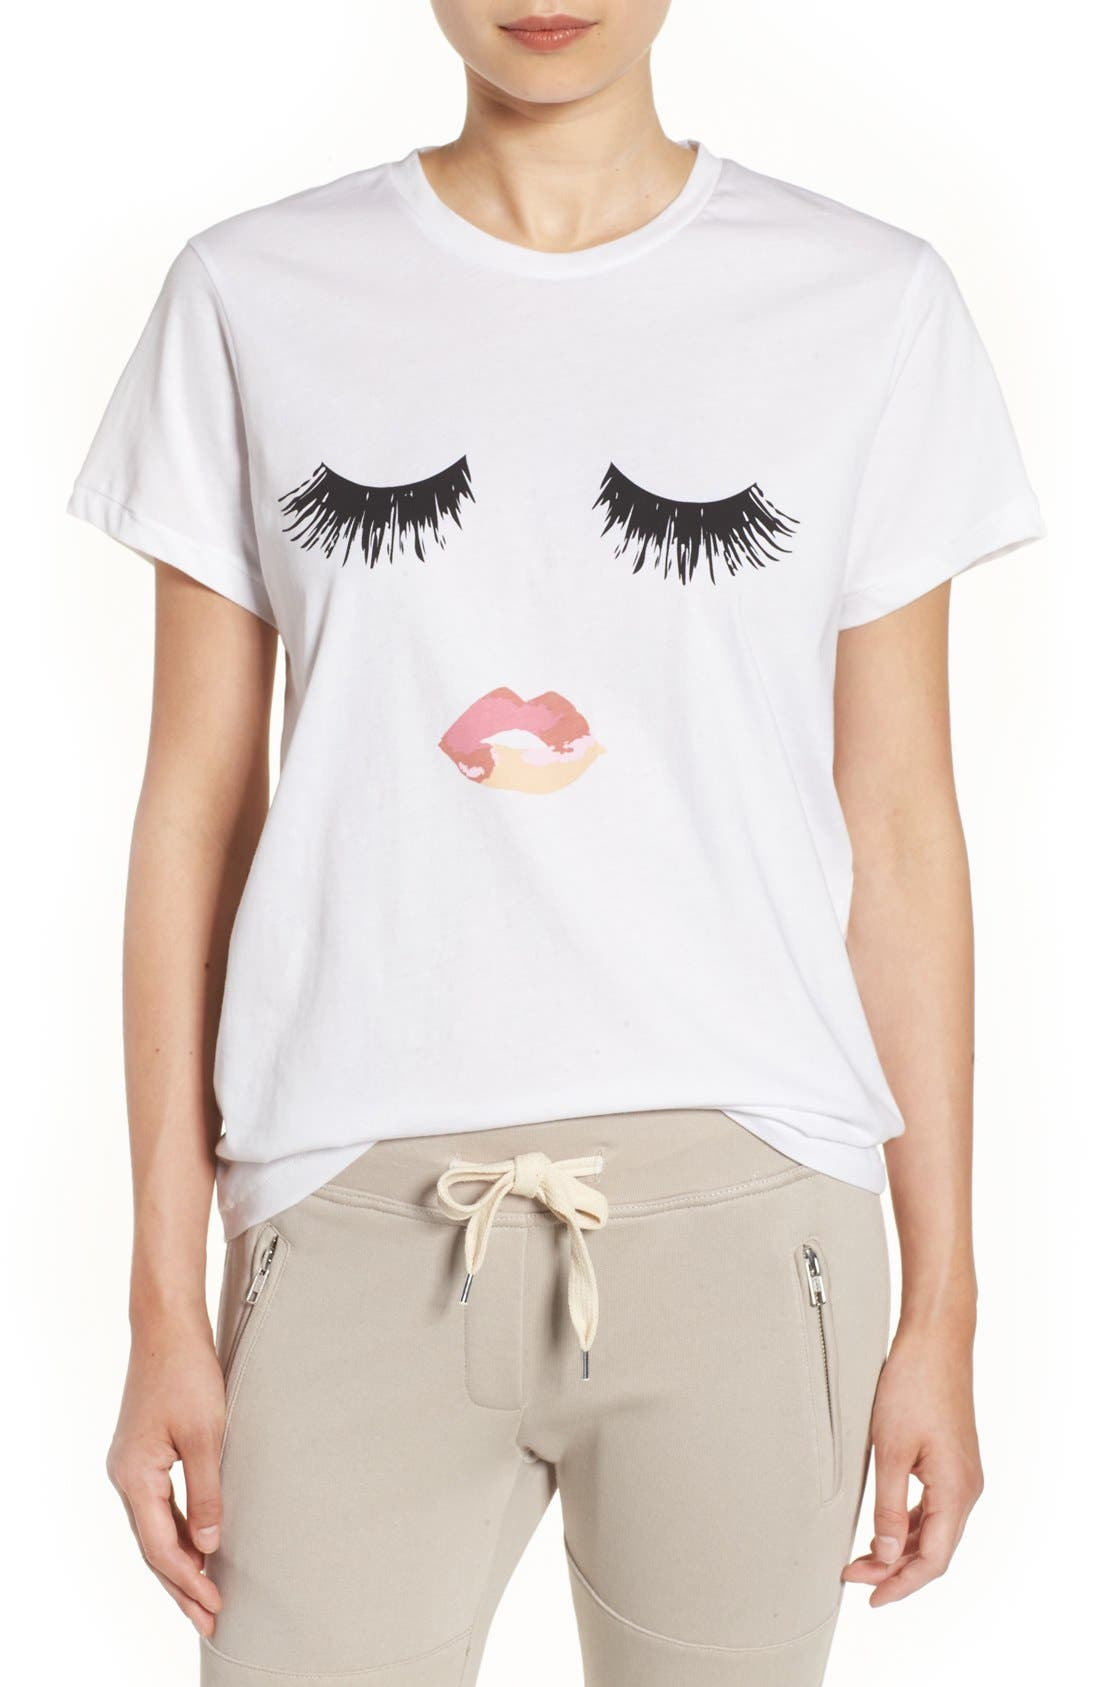 Sincerely Jules 'Lips & Lashes' Graphic Tee